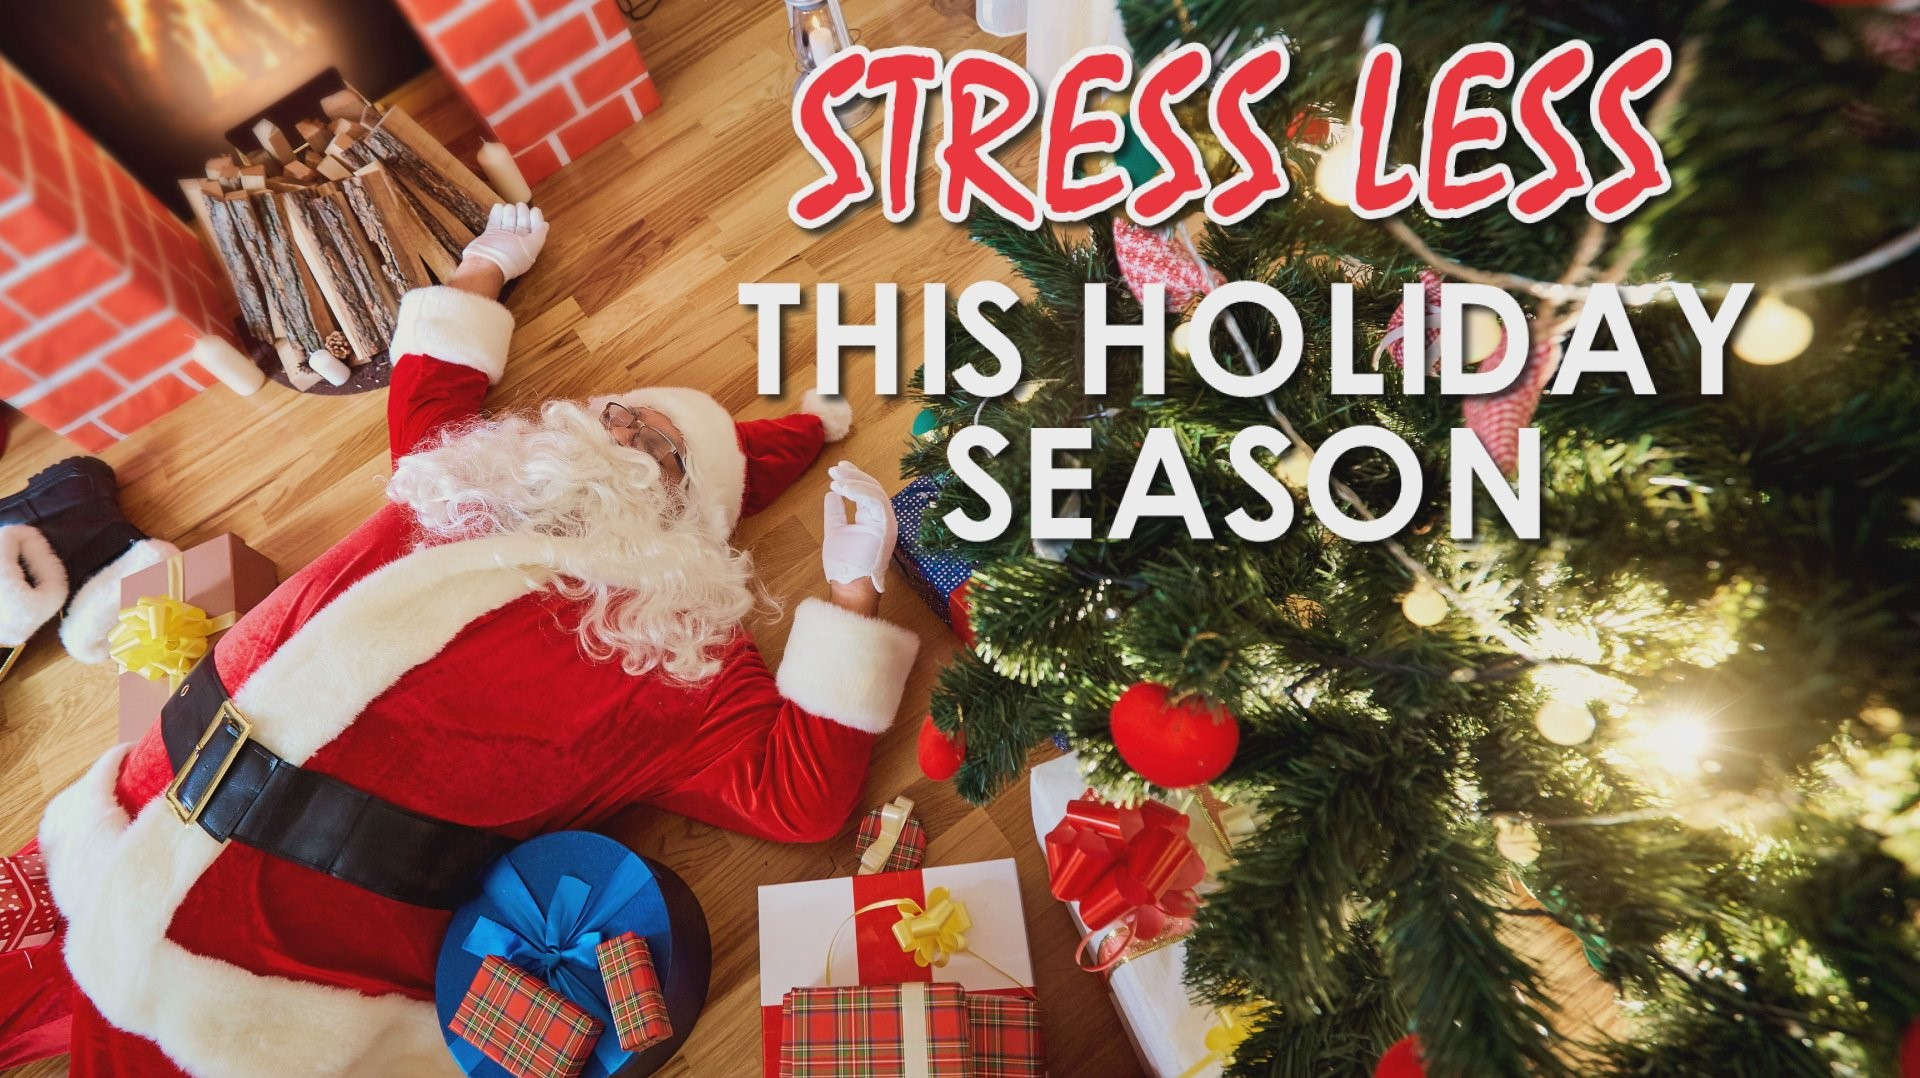 Prescription for stress during the holiday season